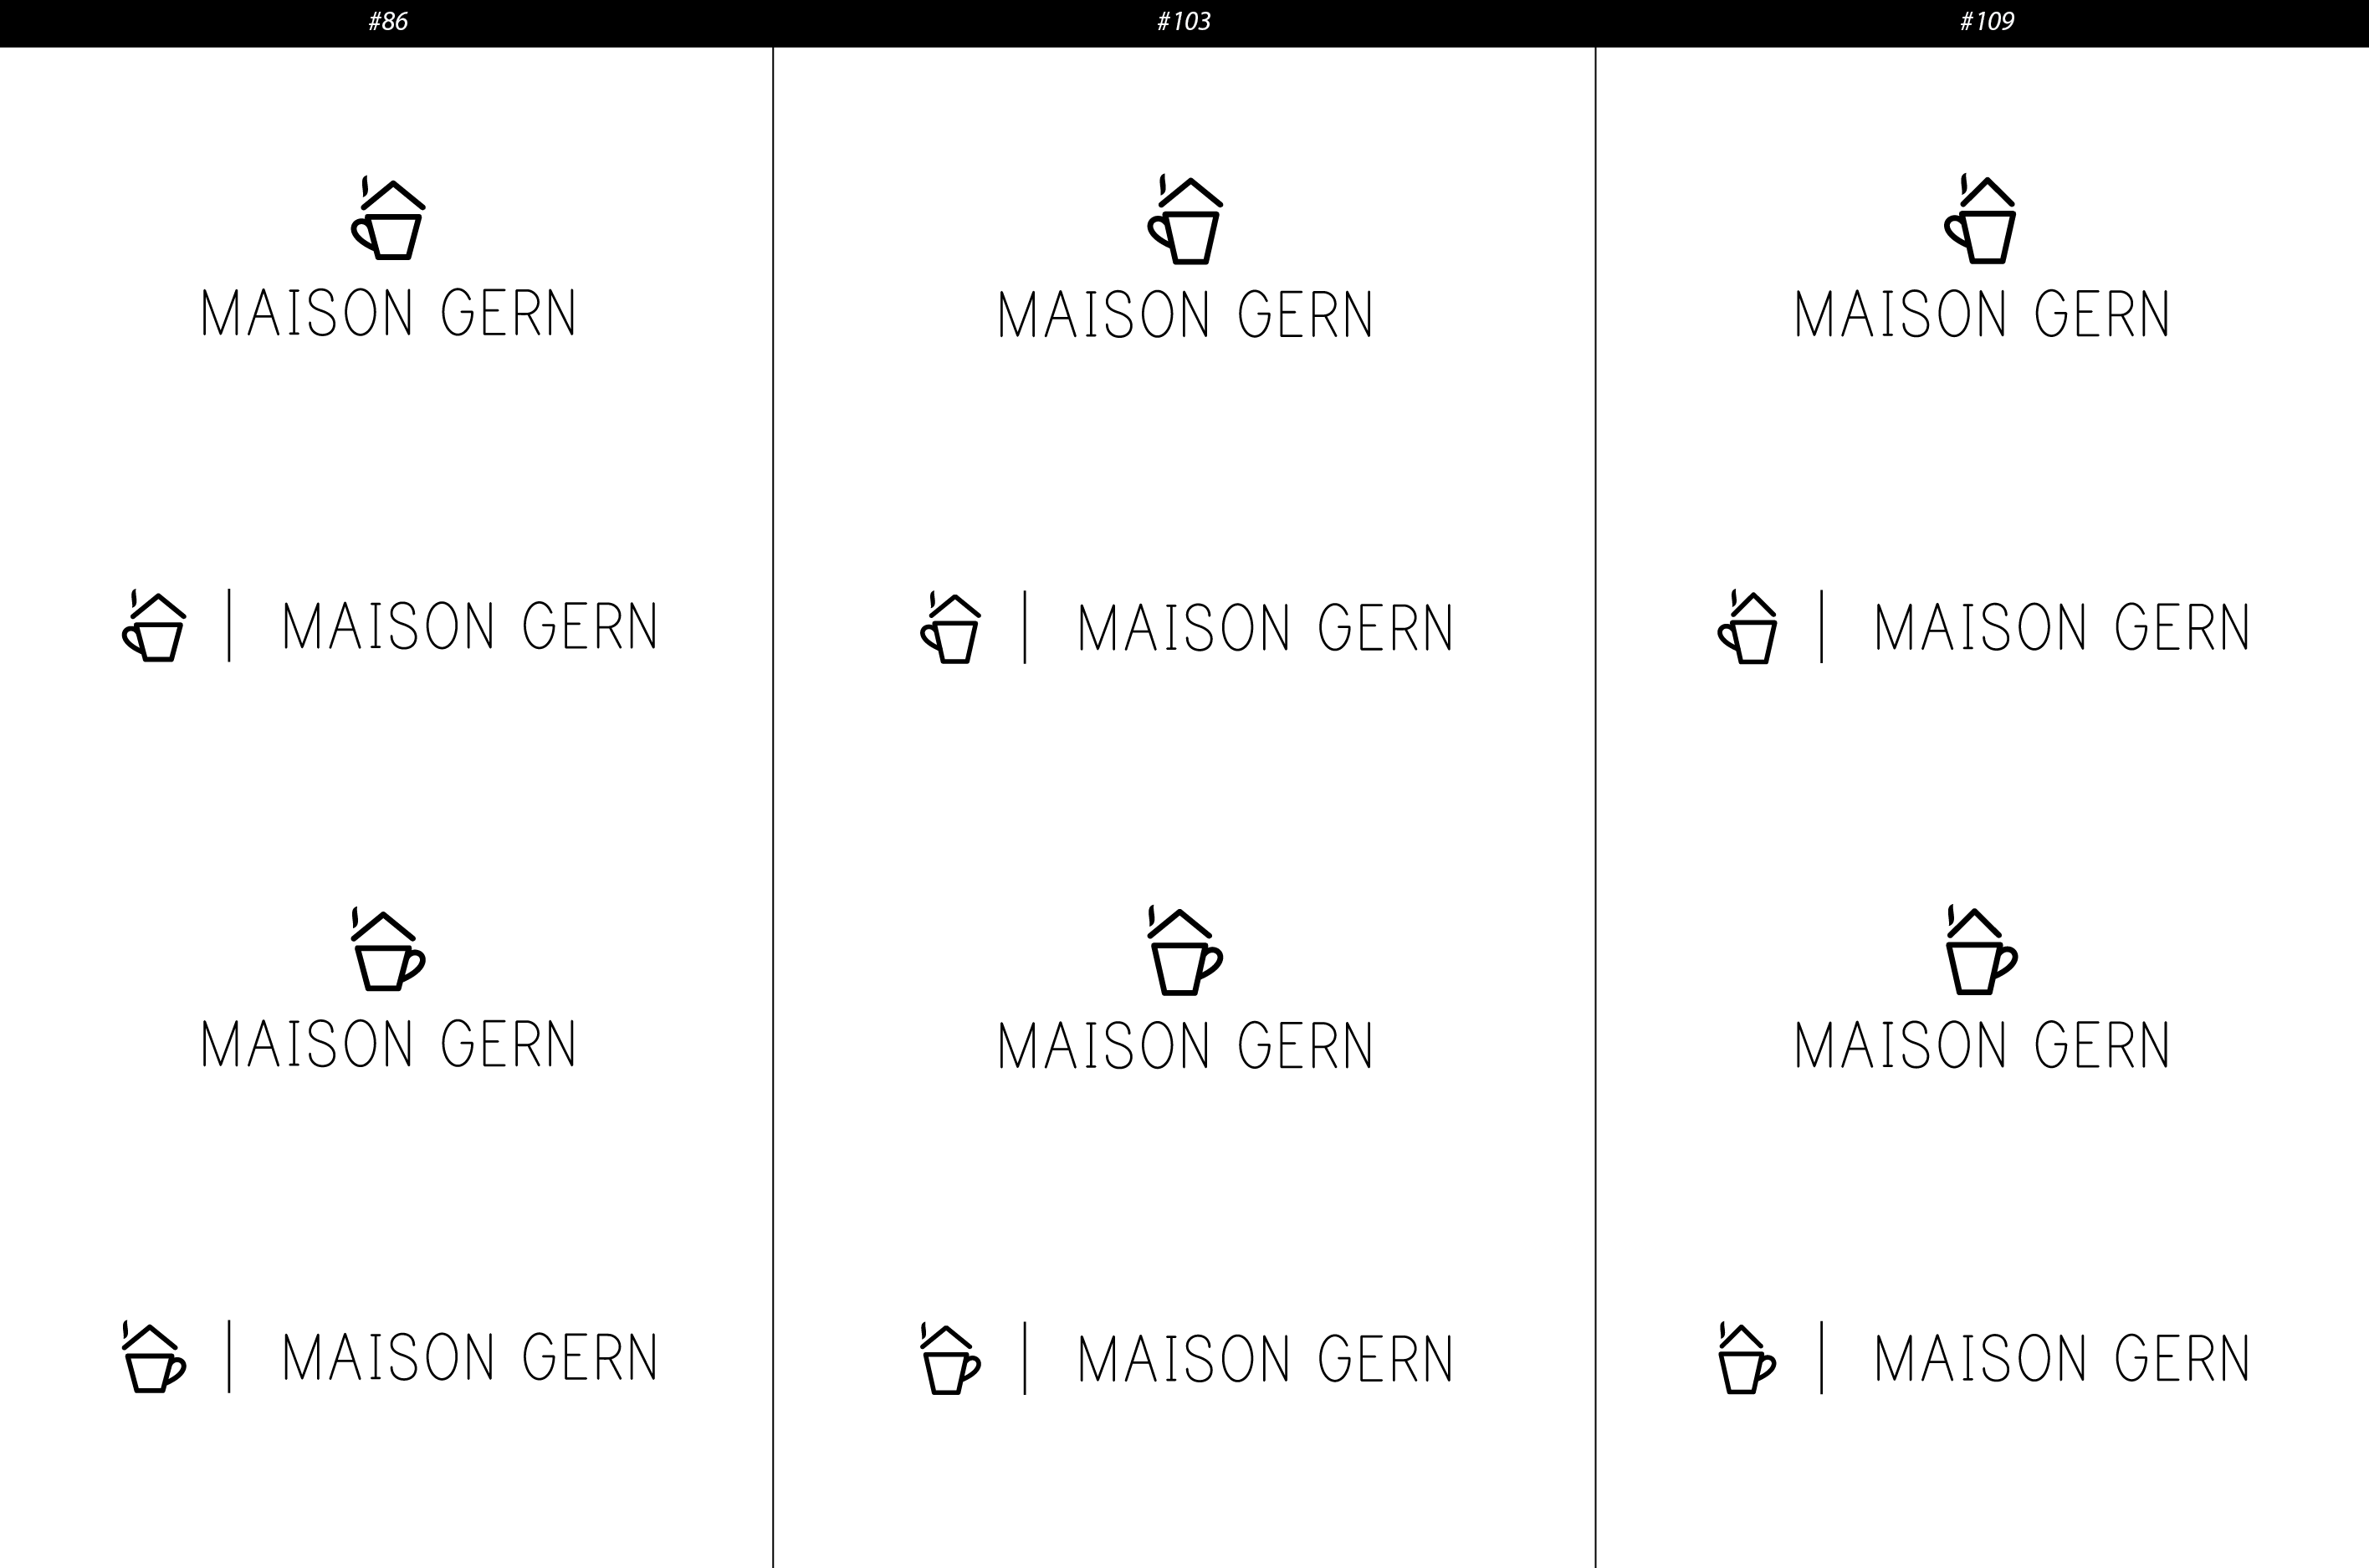 Maison Gern offers Coffee and Tea - but different and we need a Logo to show that.